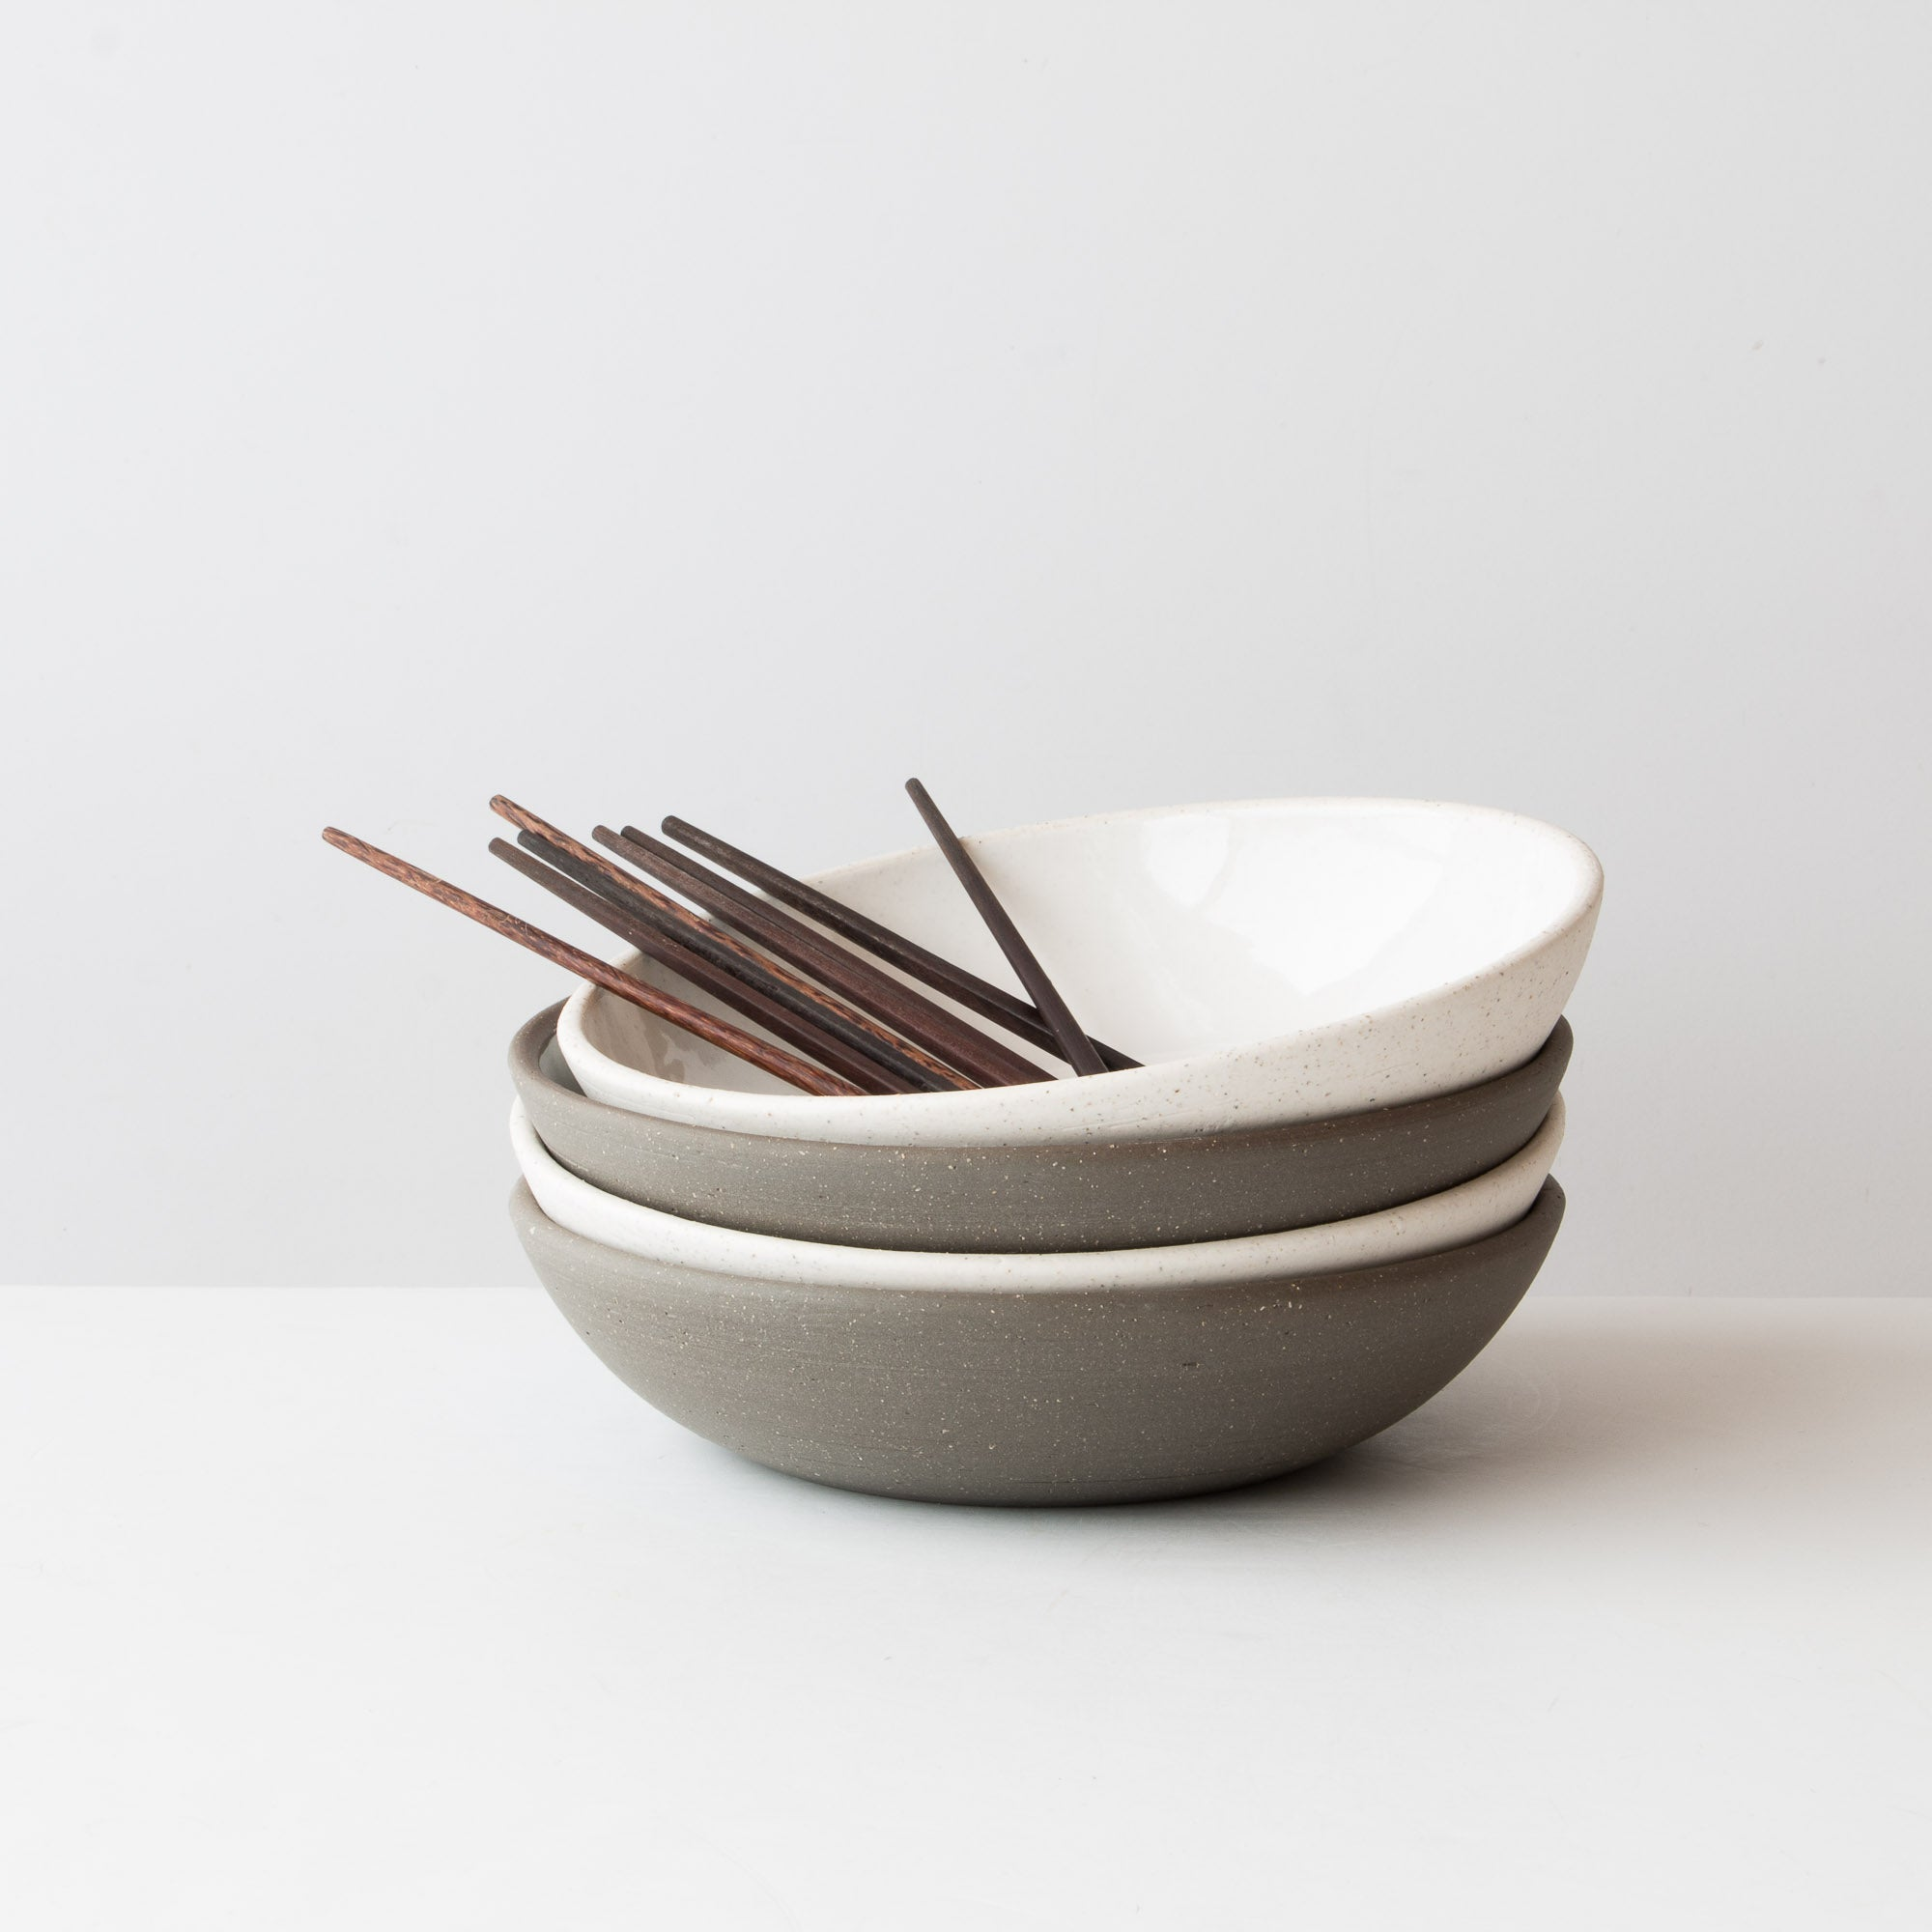 Set of 4 Very Large Handmade Ceramic Poke Bowls - Sold by Chic & Basta